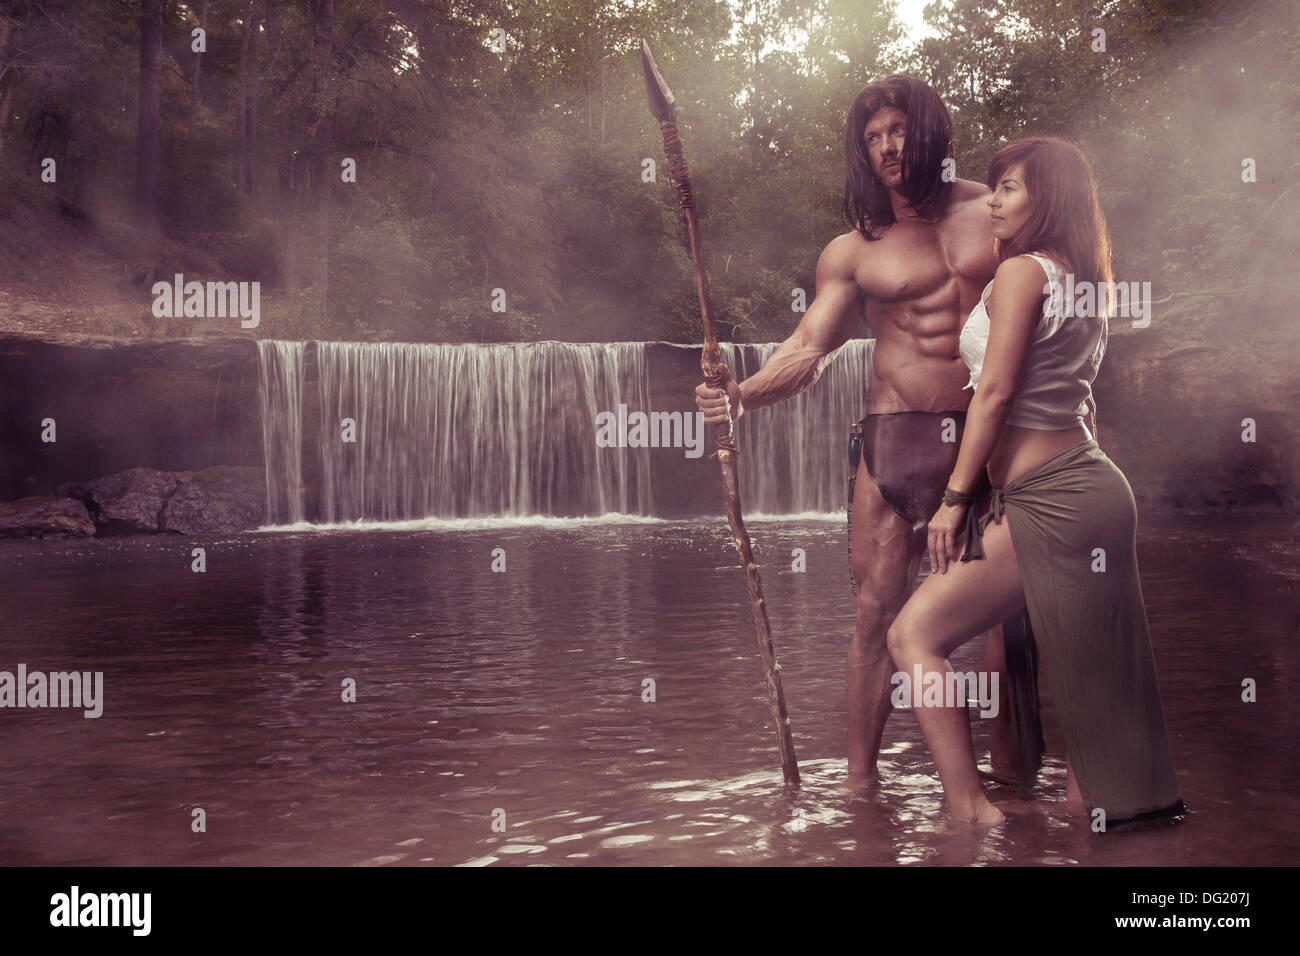 Tarzan and Jane like heroes standing in water in front of waterfall - Stock Image